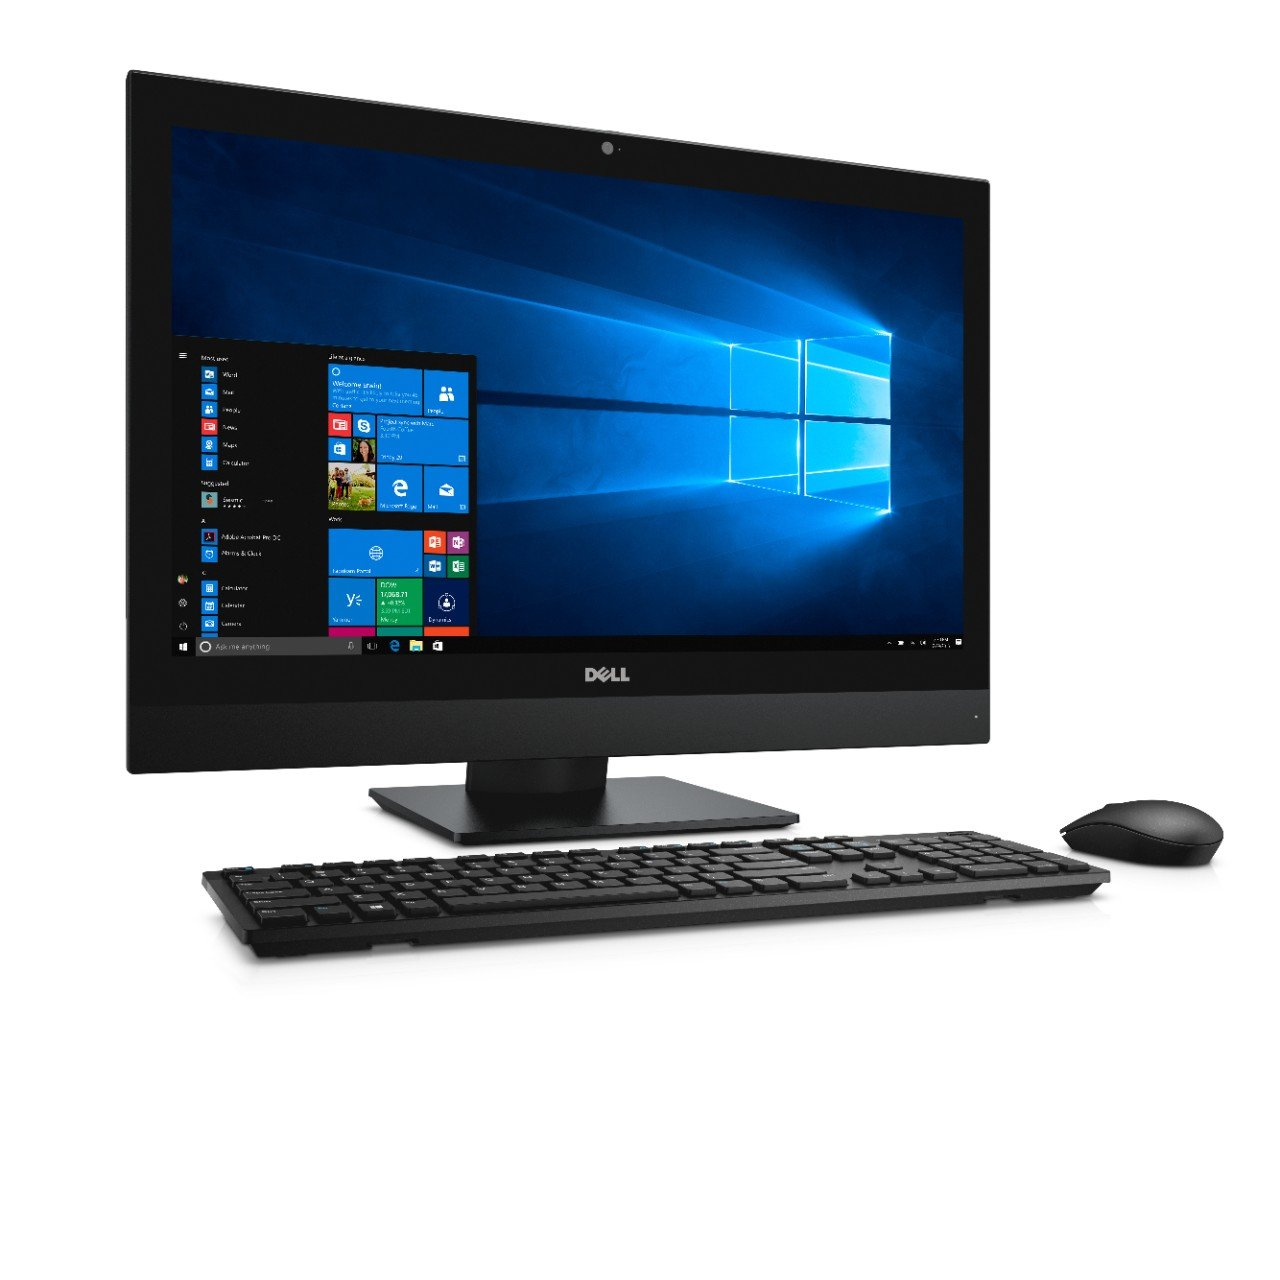 Dell OptiPlex 7450 All In One Desktop Computer, Intel Core i5-7500, 8GB DDR4, 500GB Hard Drive, Windows 10 Pro (25HP3) by Dell